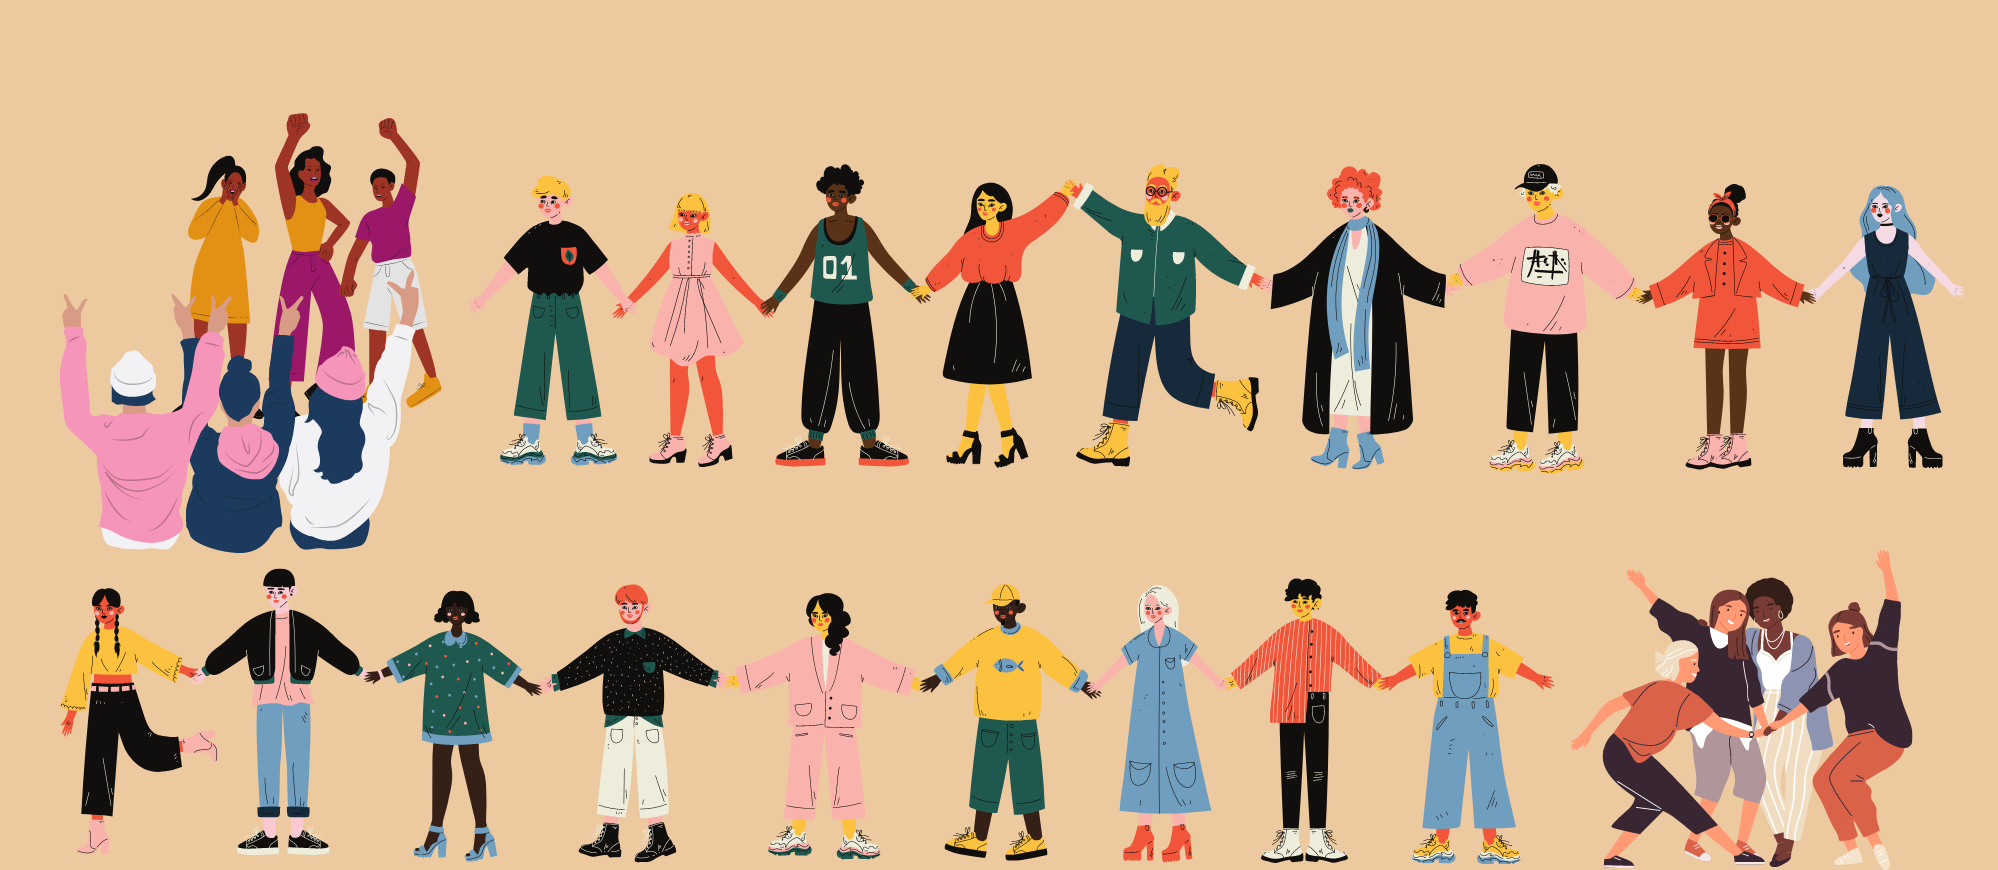 A illustrated panel of diverse communities